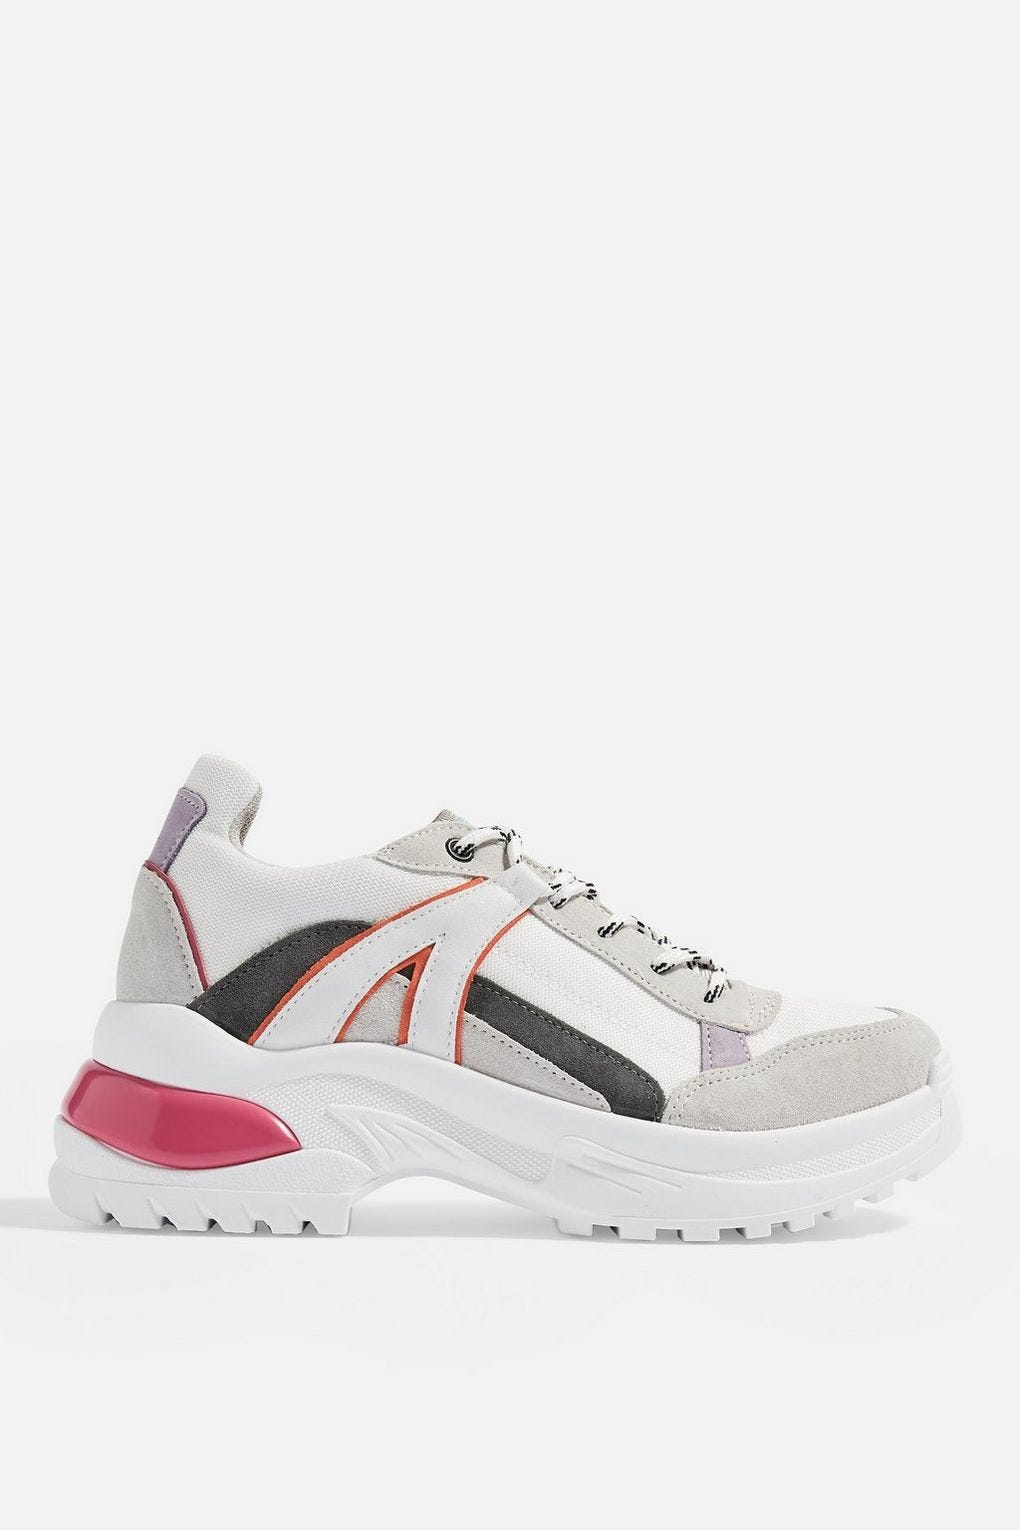 130d1ba7113 Coolest Ugly Dad Sneakers For Women - 2019 Trends